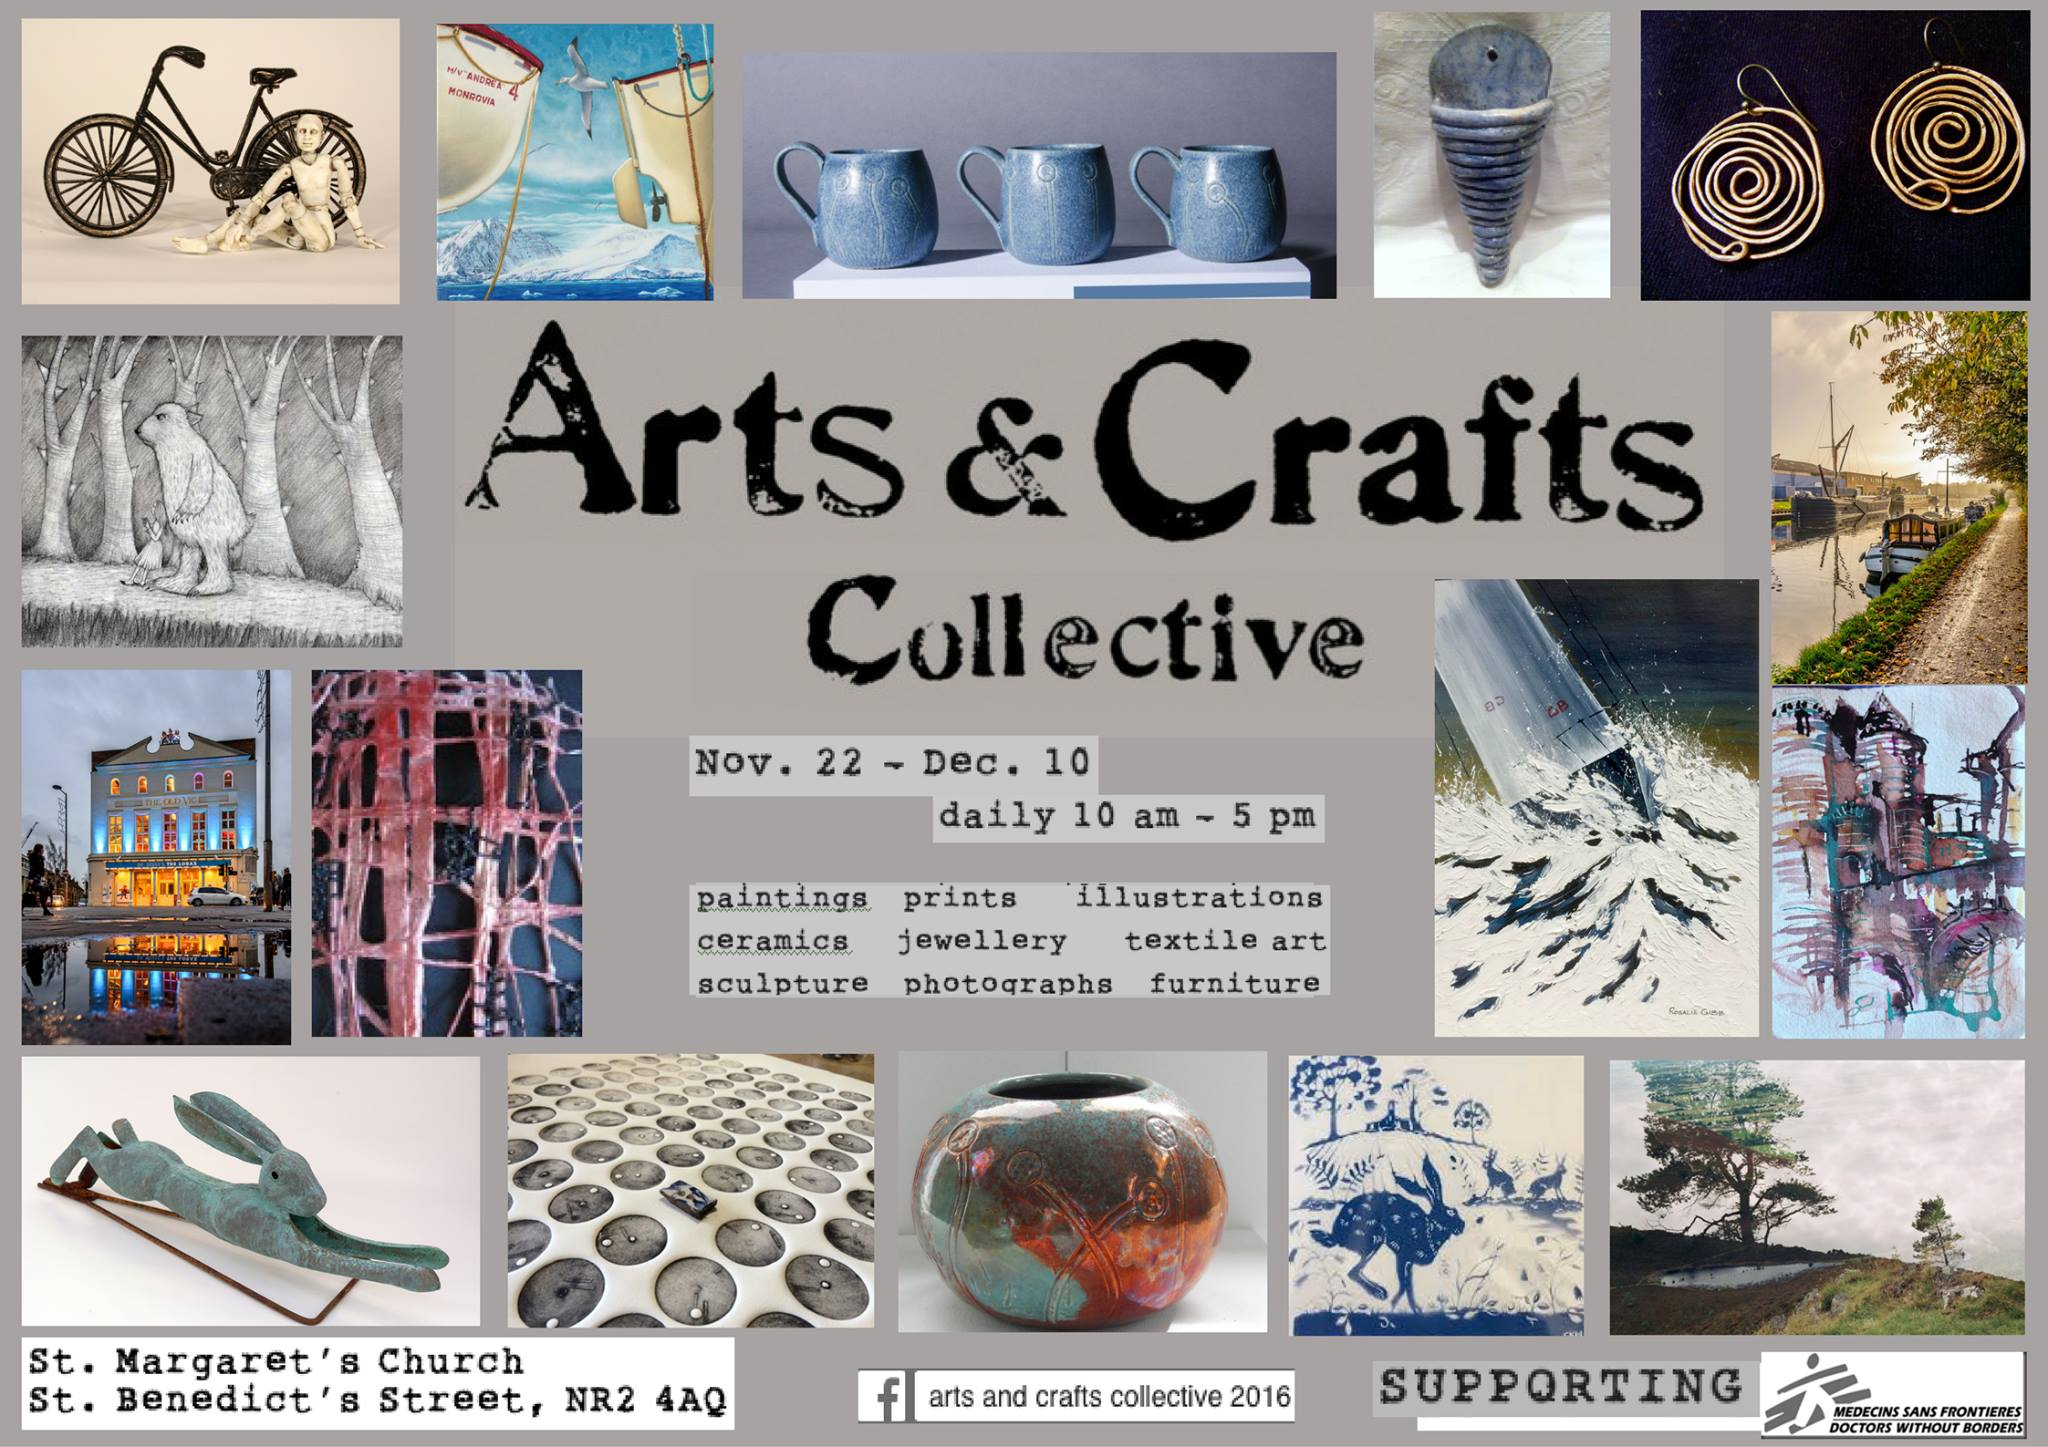 Art and Crafts Collective at St Margaret's Church of Art